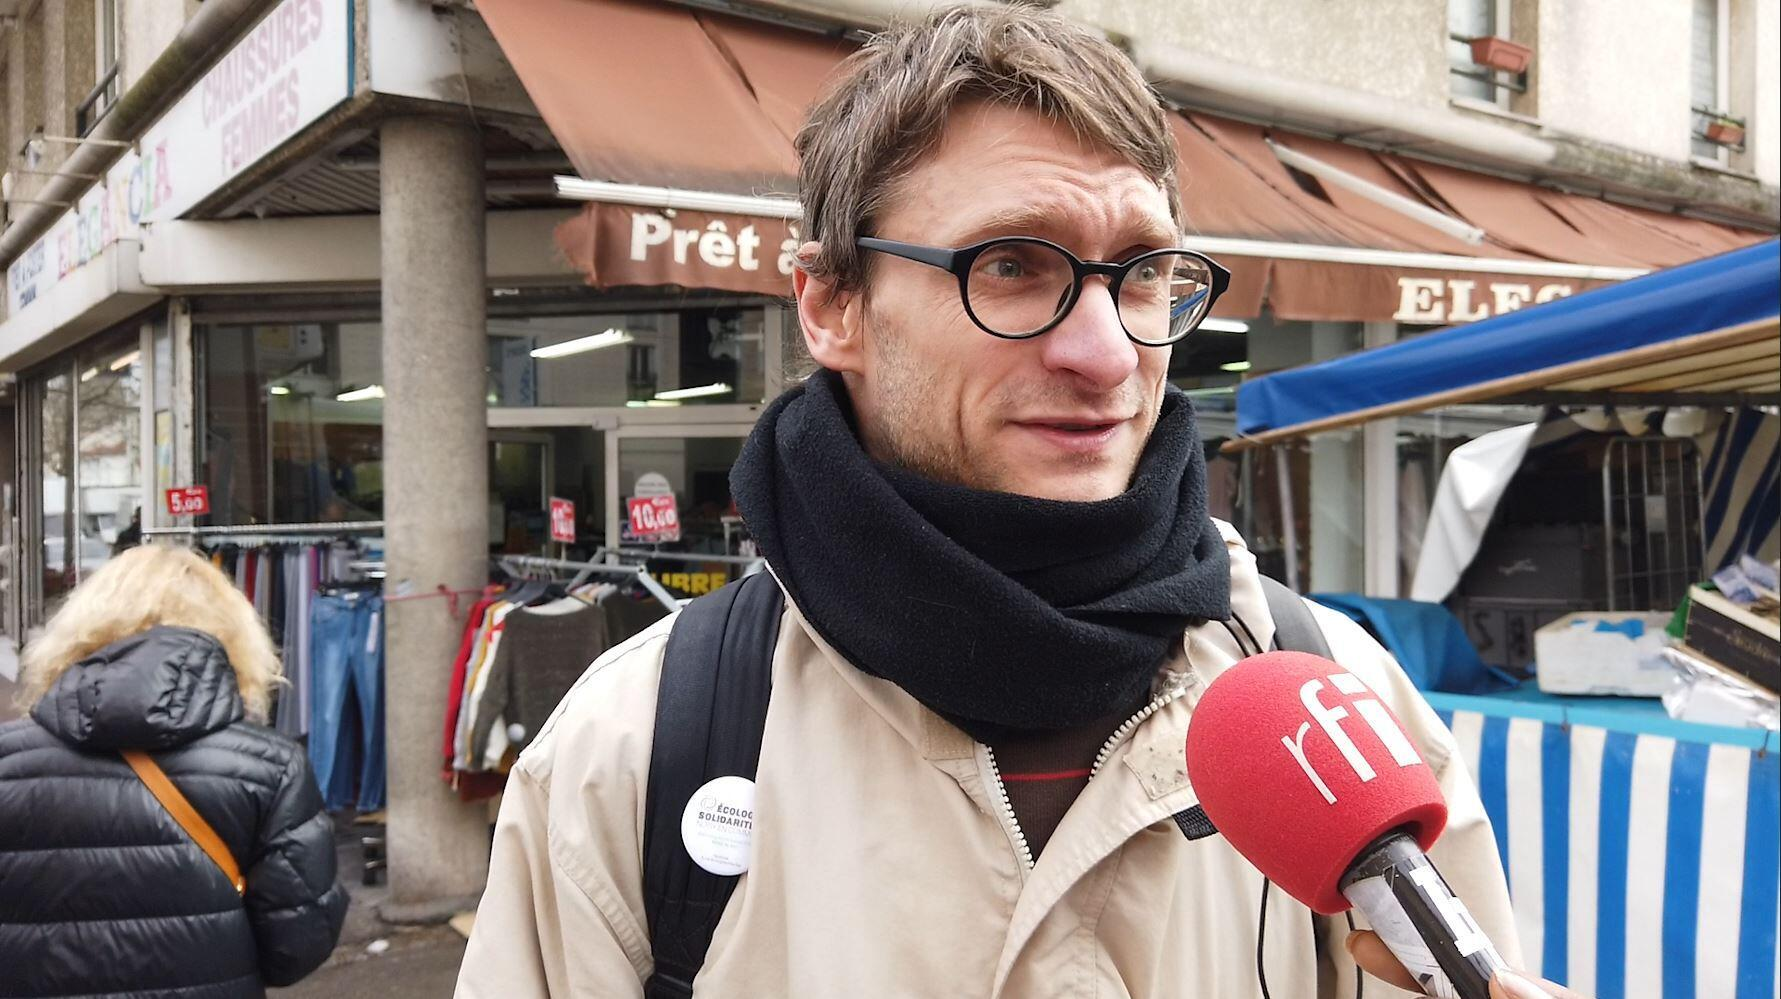 Baptiste Gerbier is a member of France's Green party, which is hoping to make gains in local elections on 15 and 22 March.